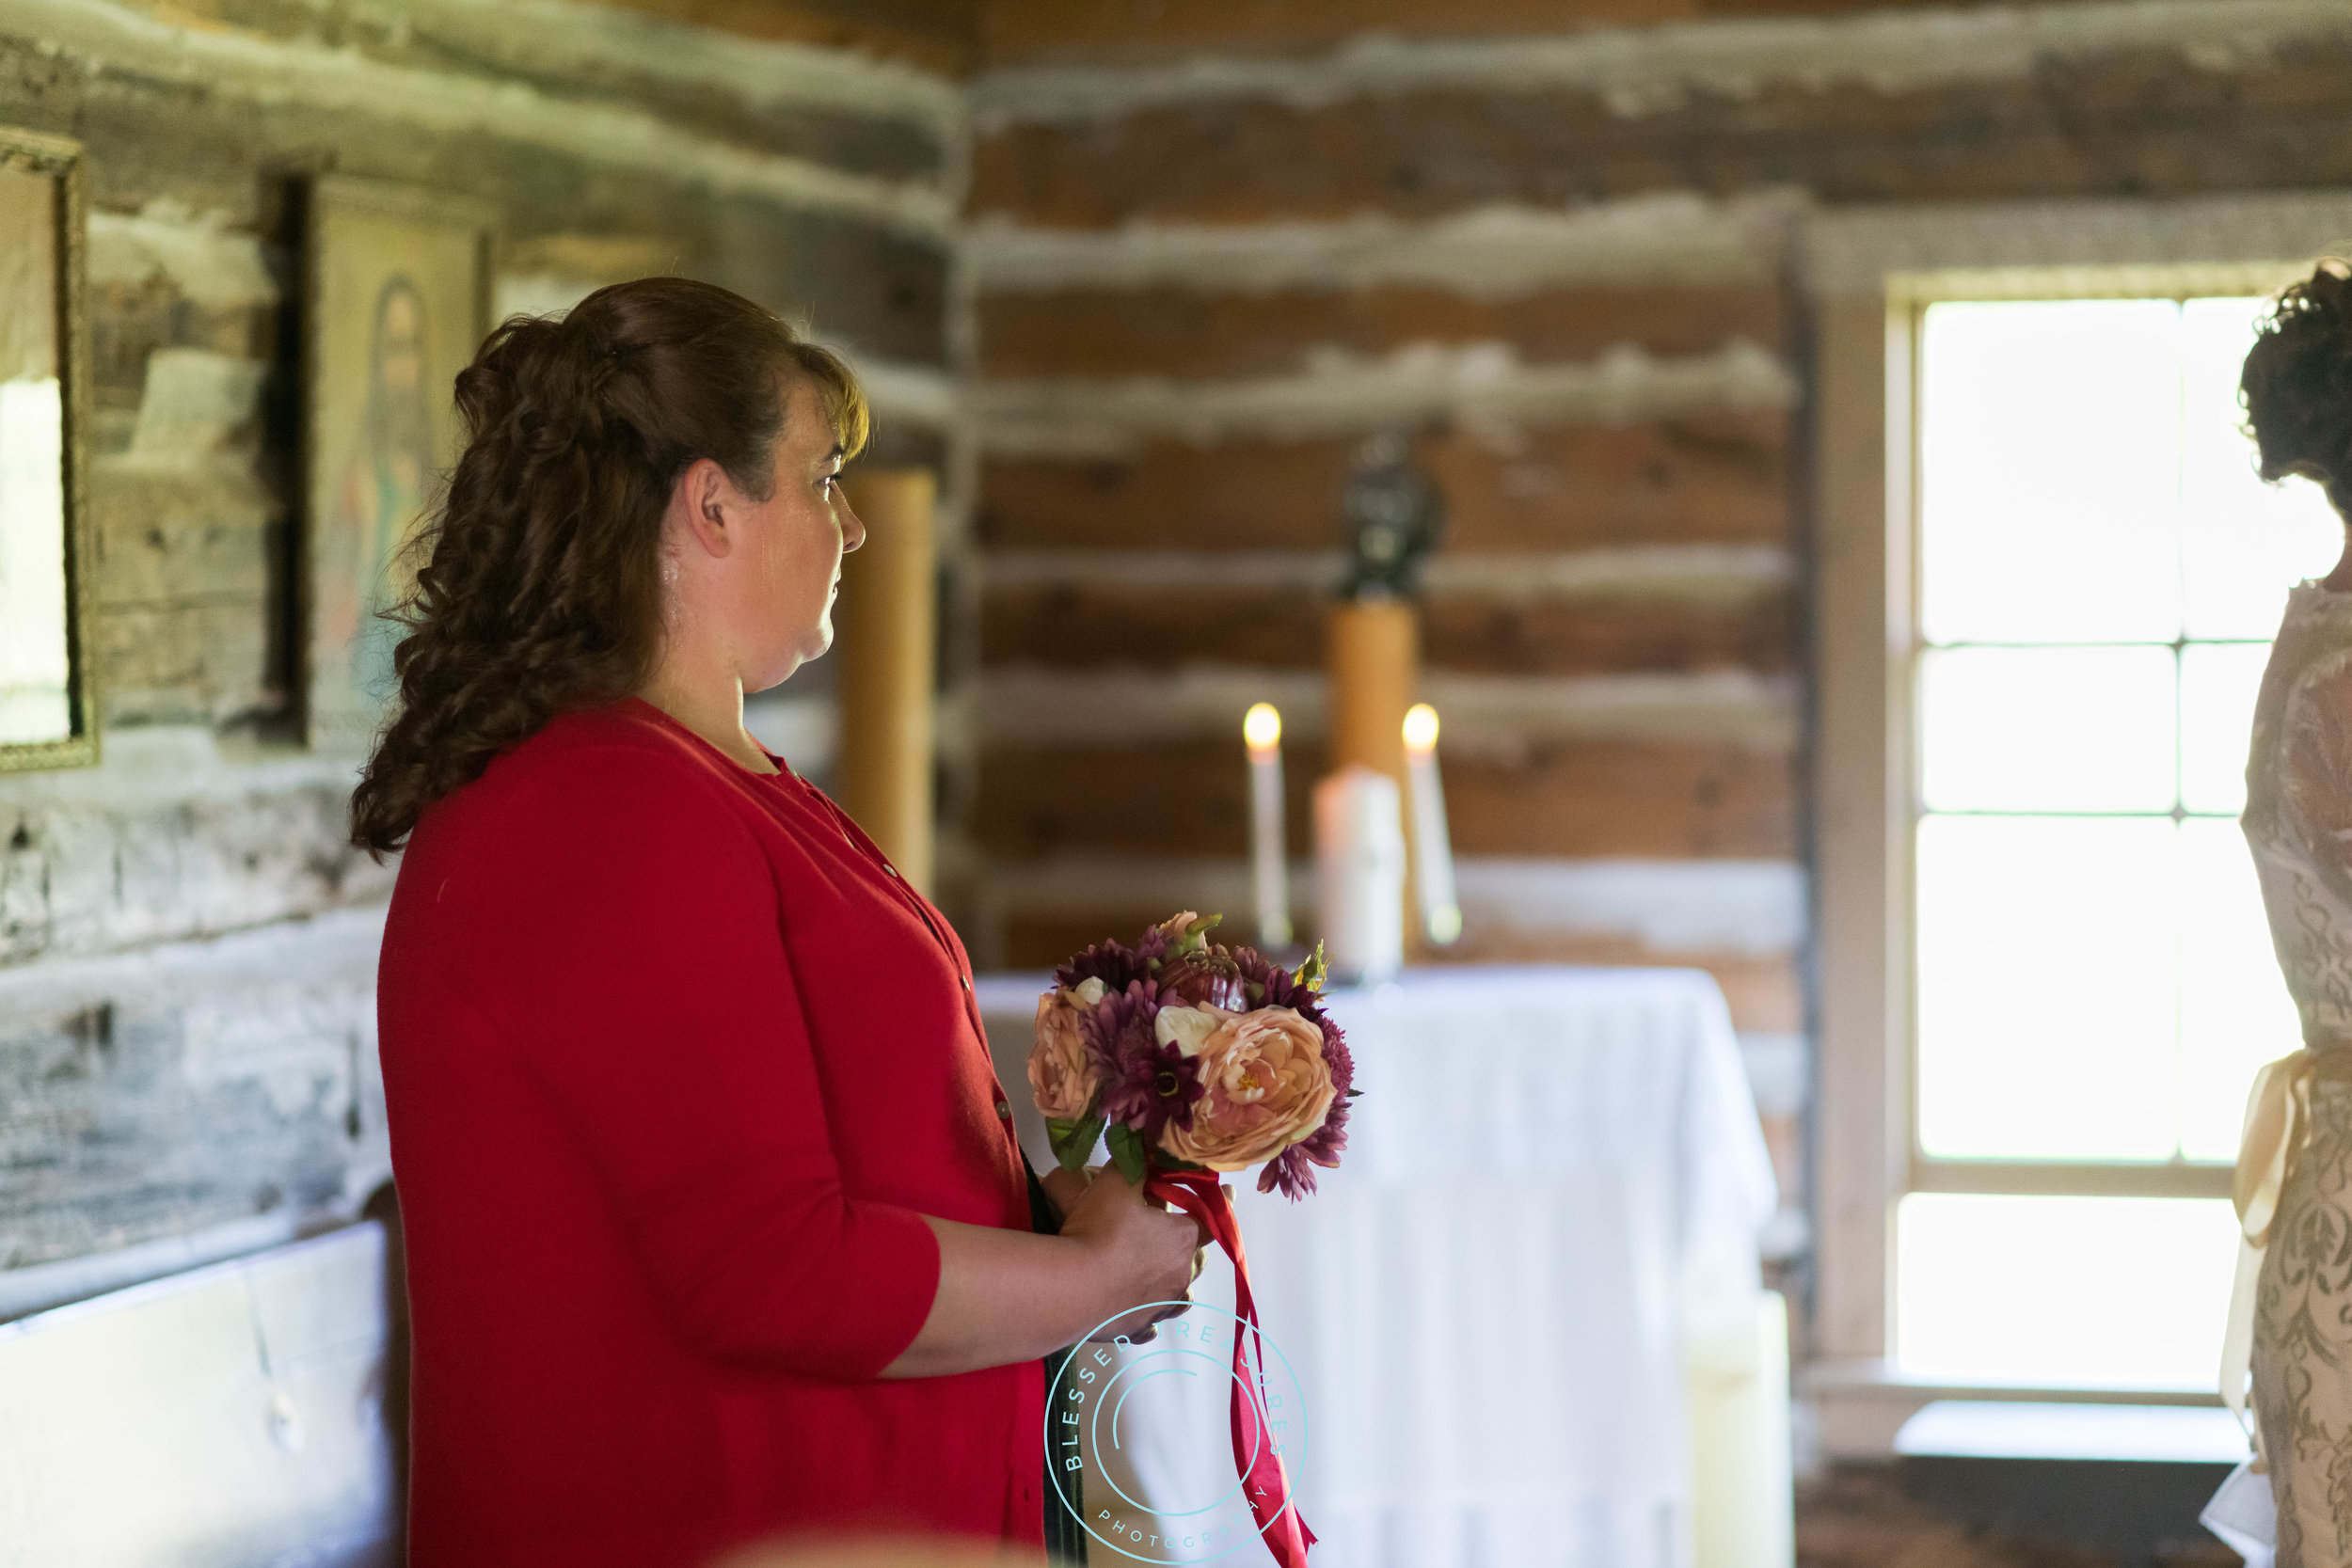 Mansfield township pioneer church crystal falls michigan bride and groom wedding ceremony maid of honour